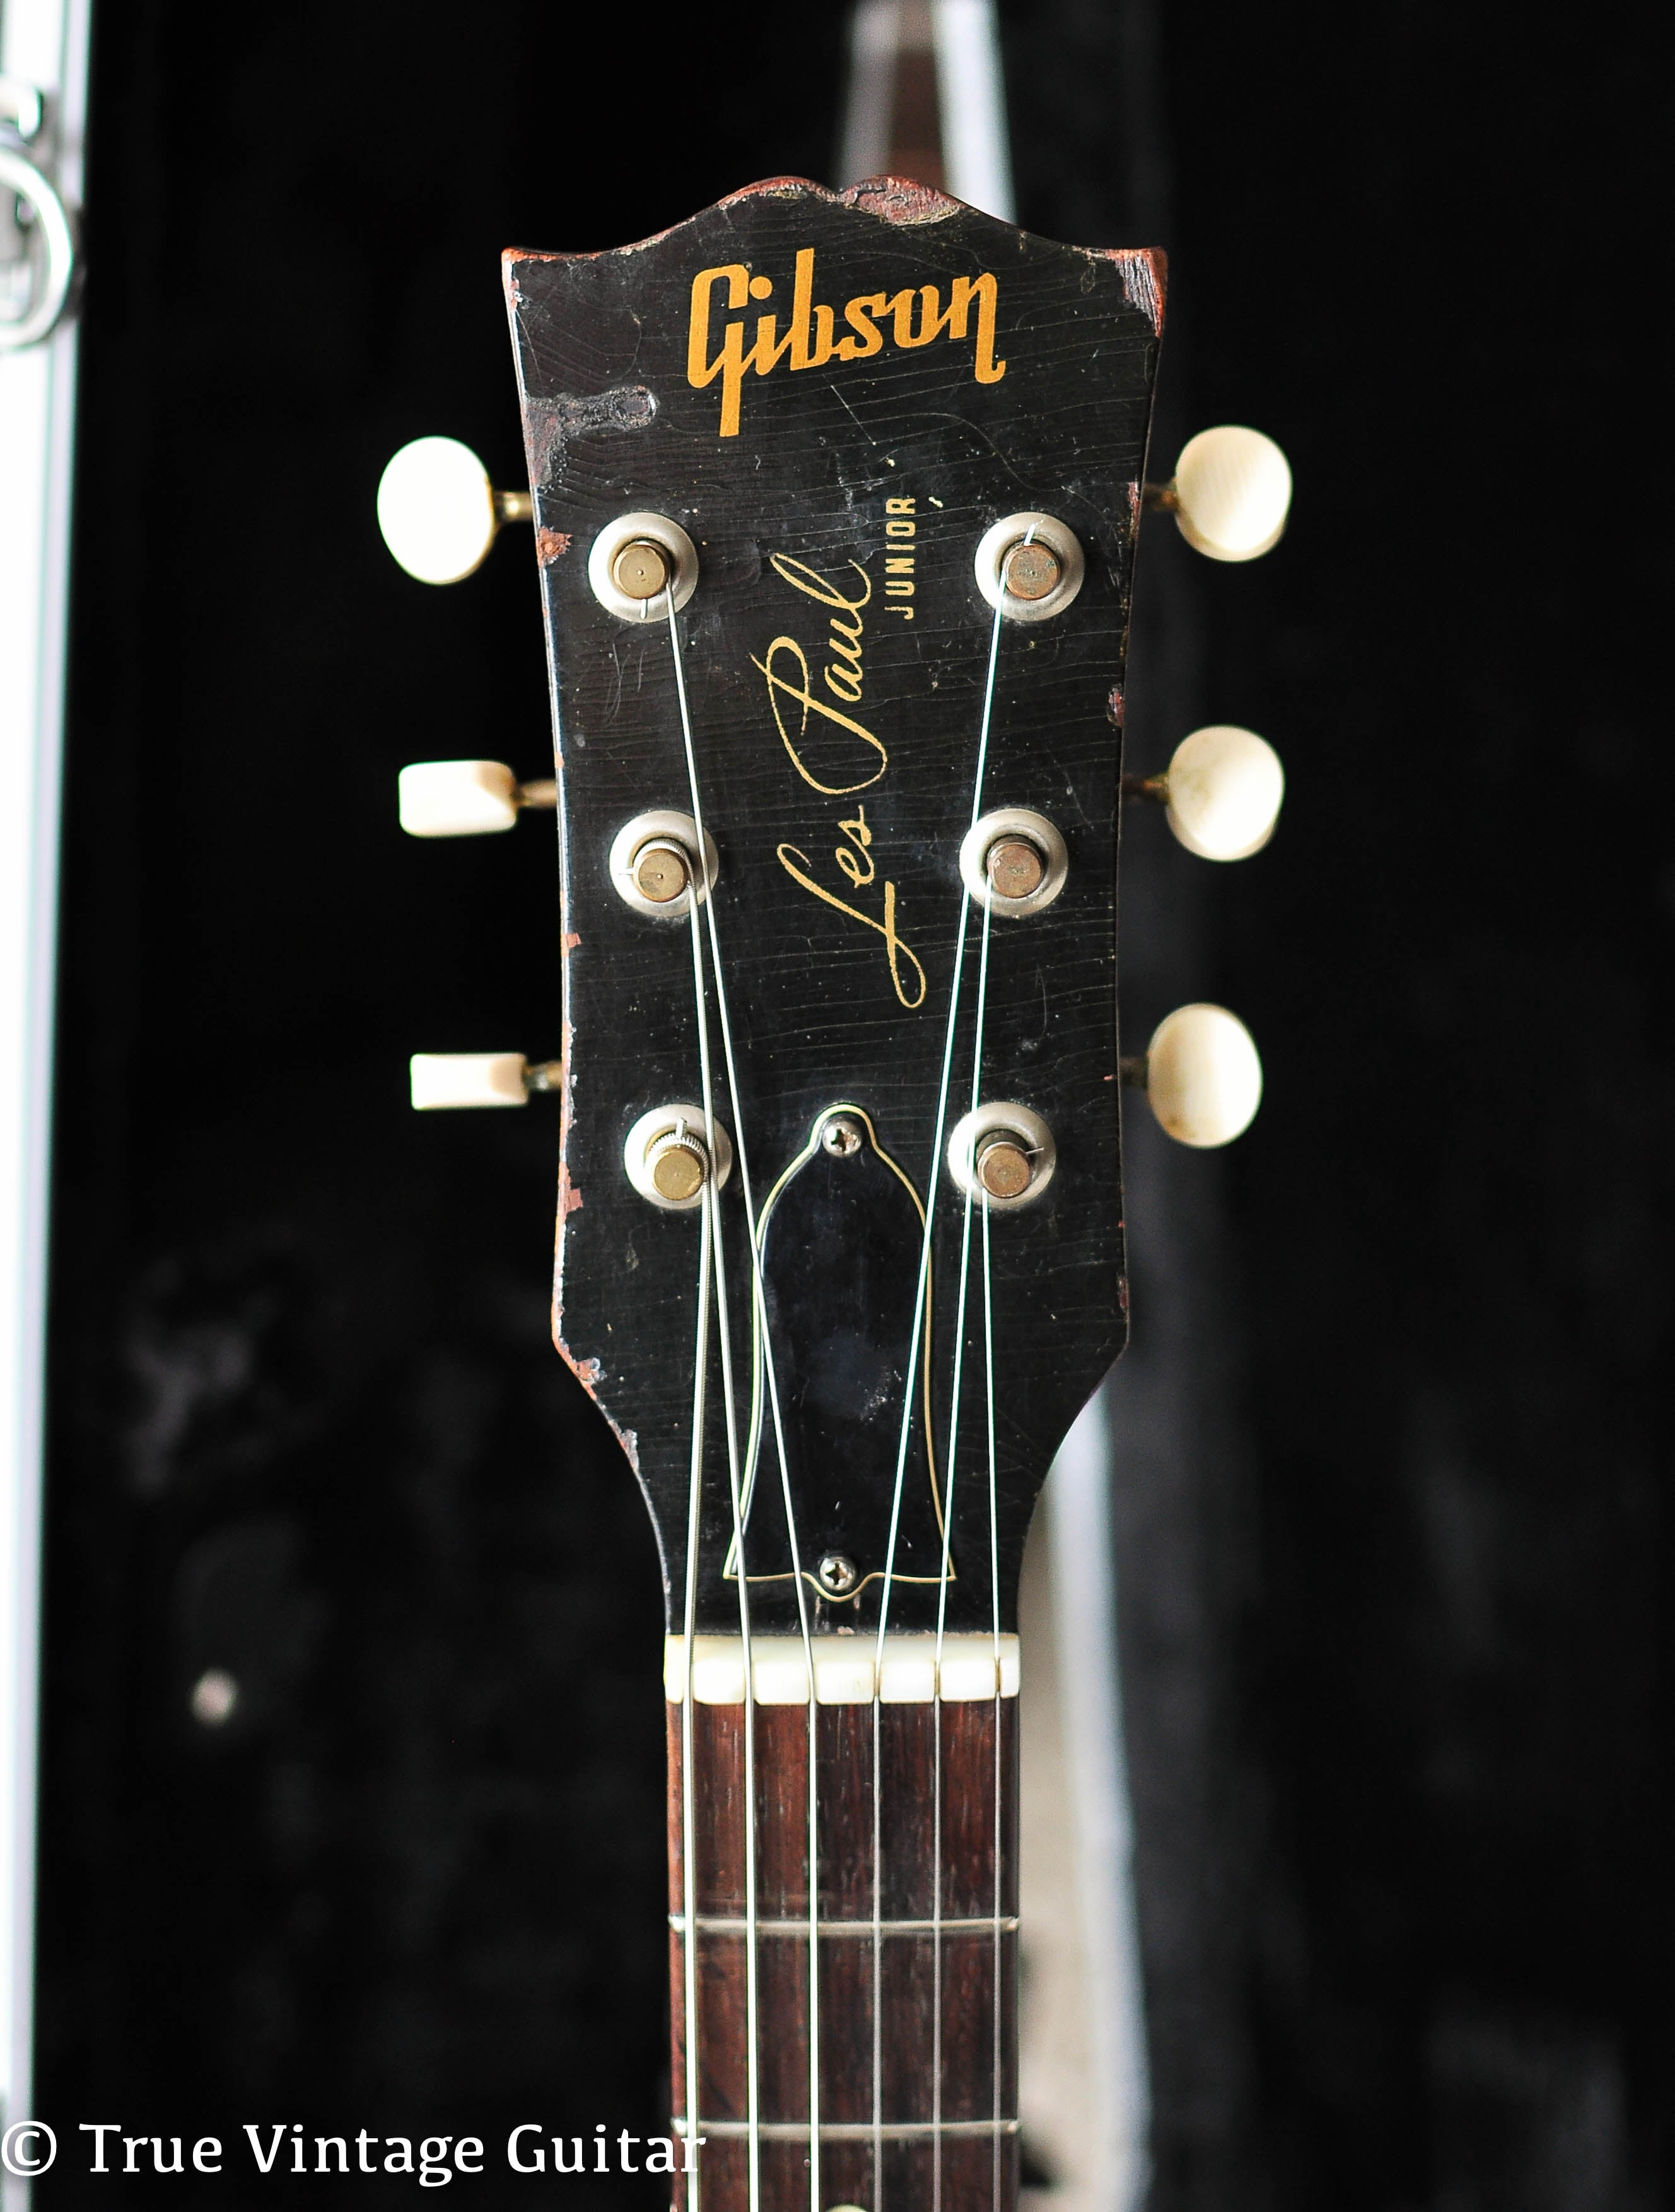 Headstock, Vintage 1956 Gibson Les Paul Junior guitar